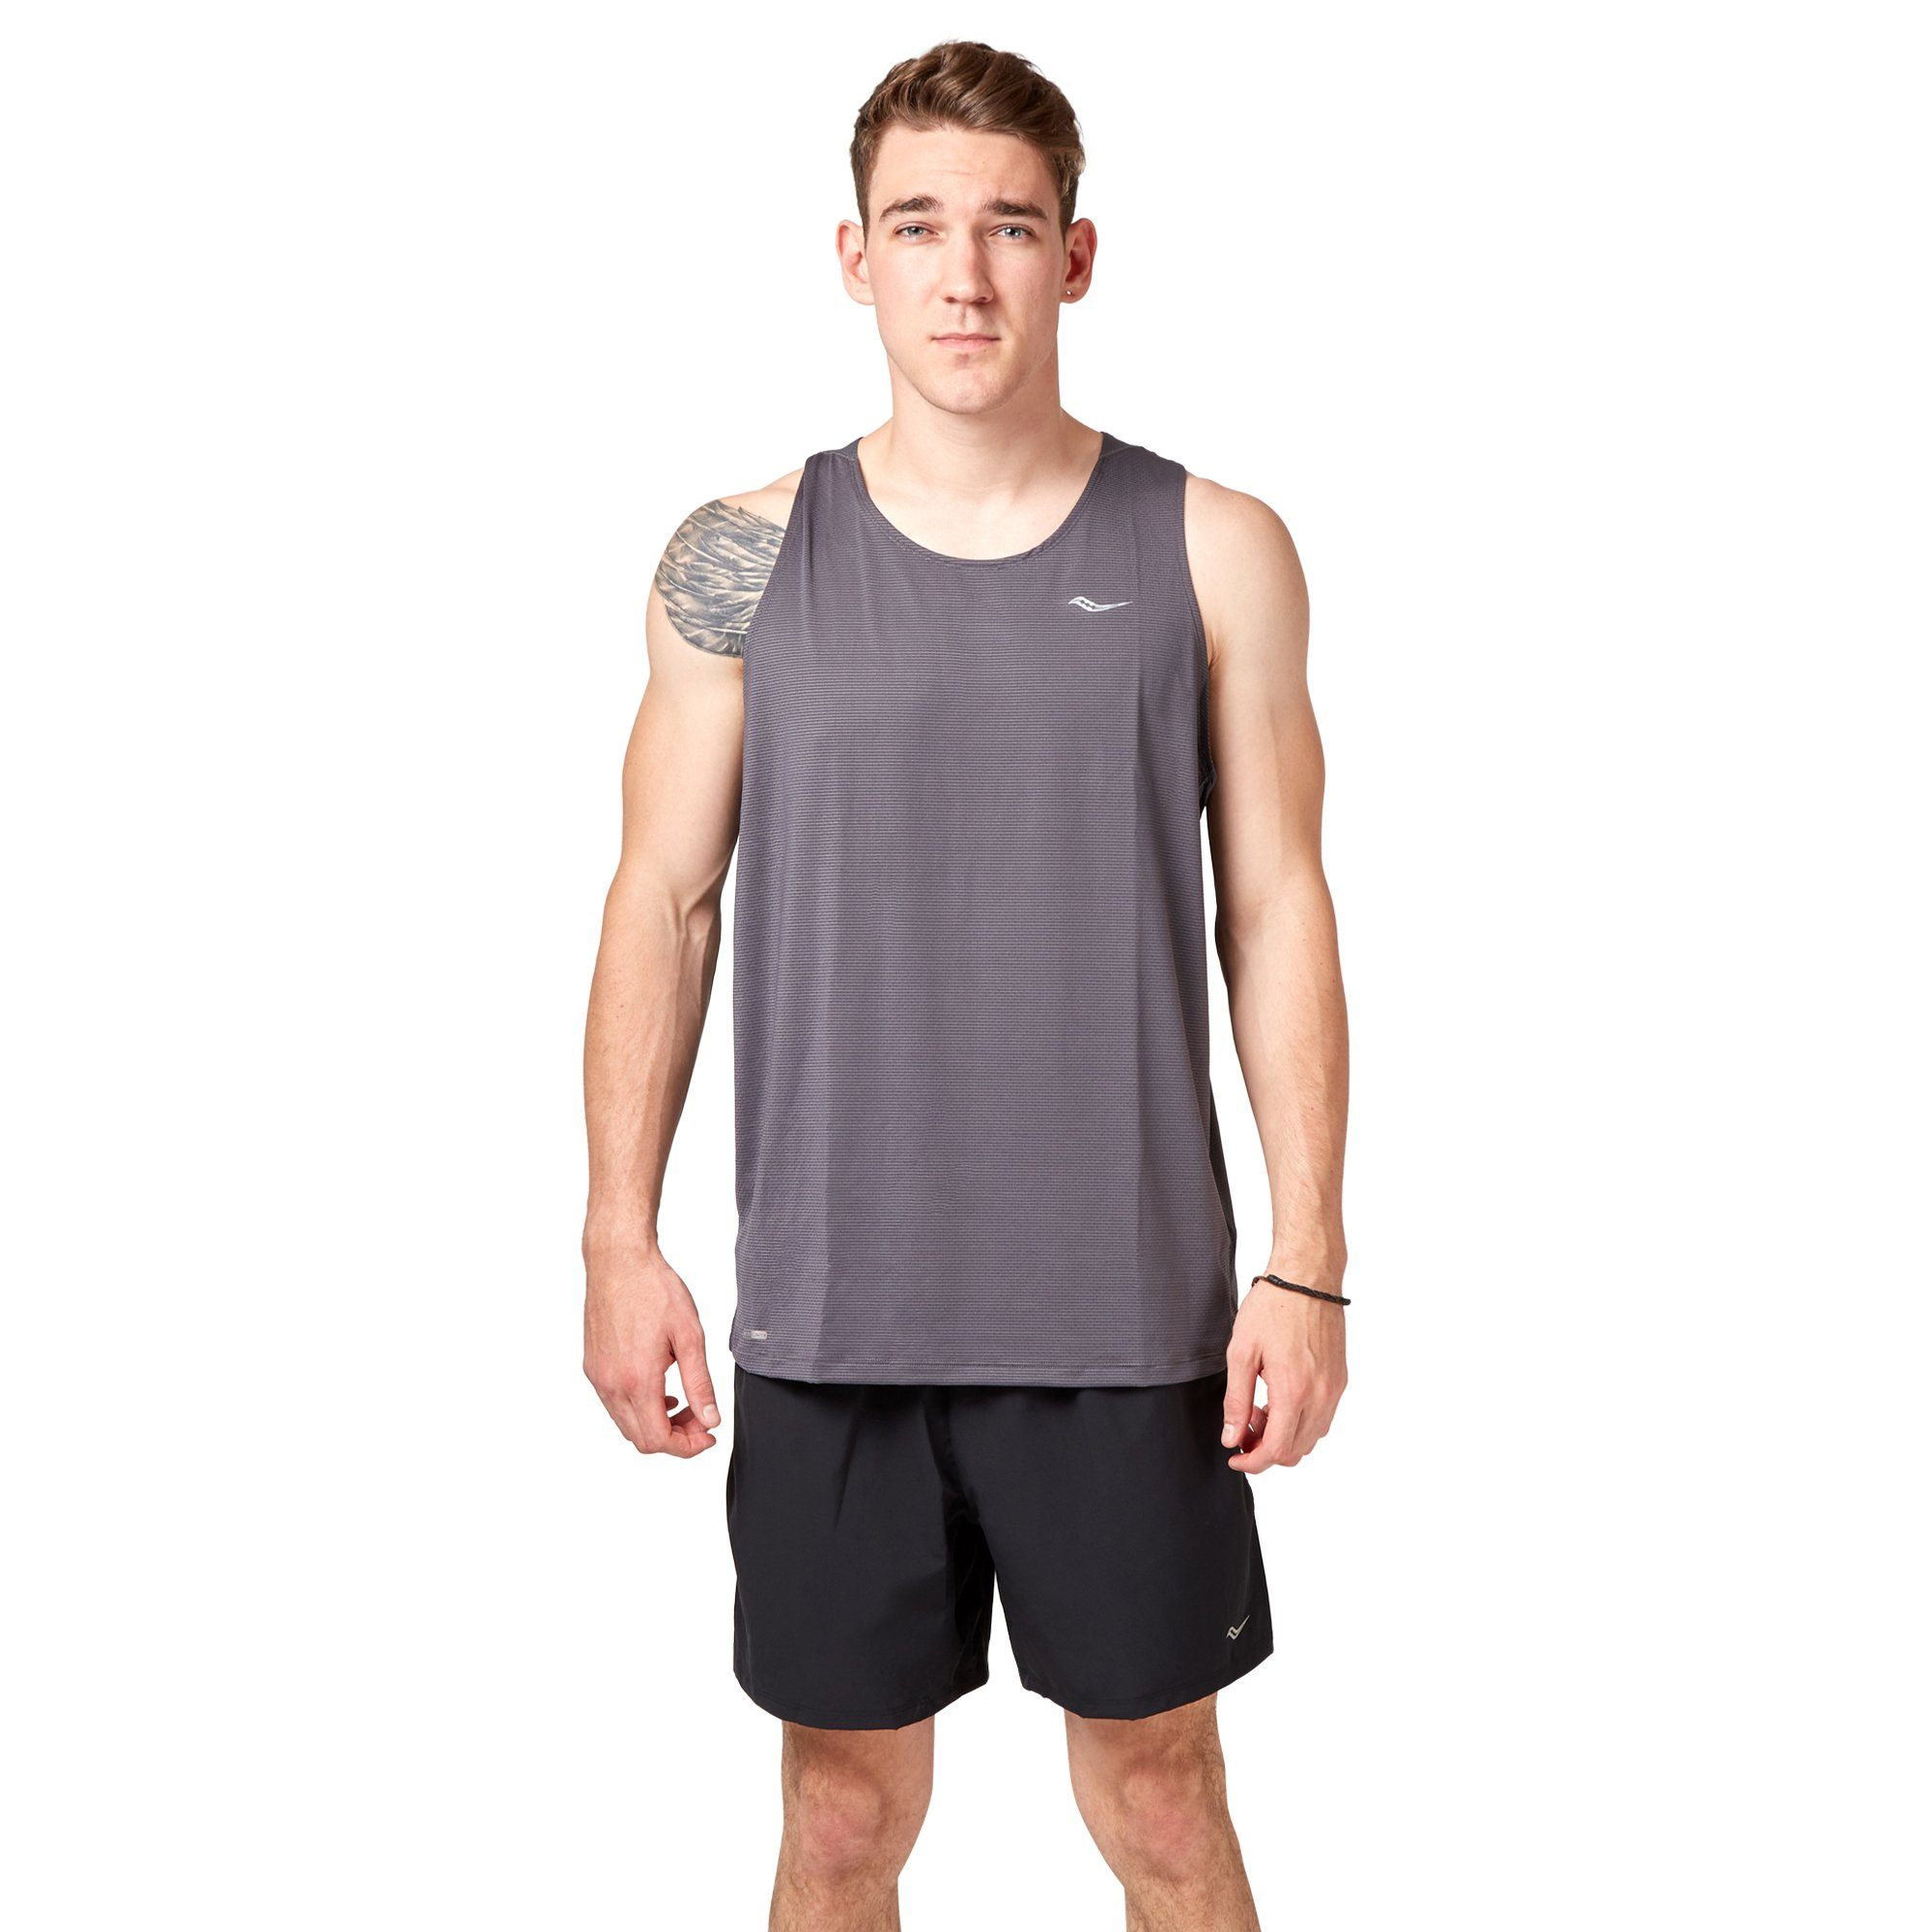 Saucony Speed of Light Singlet - Carbon Apparel Saucony